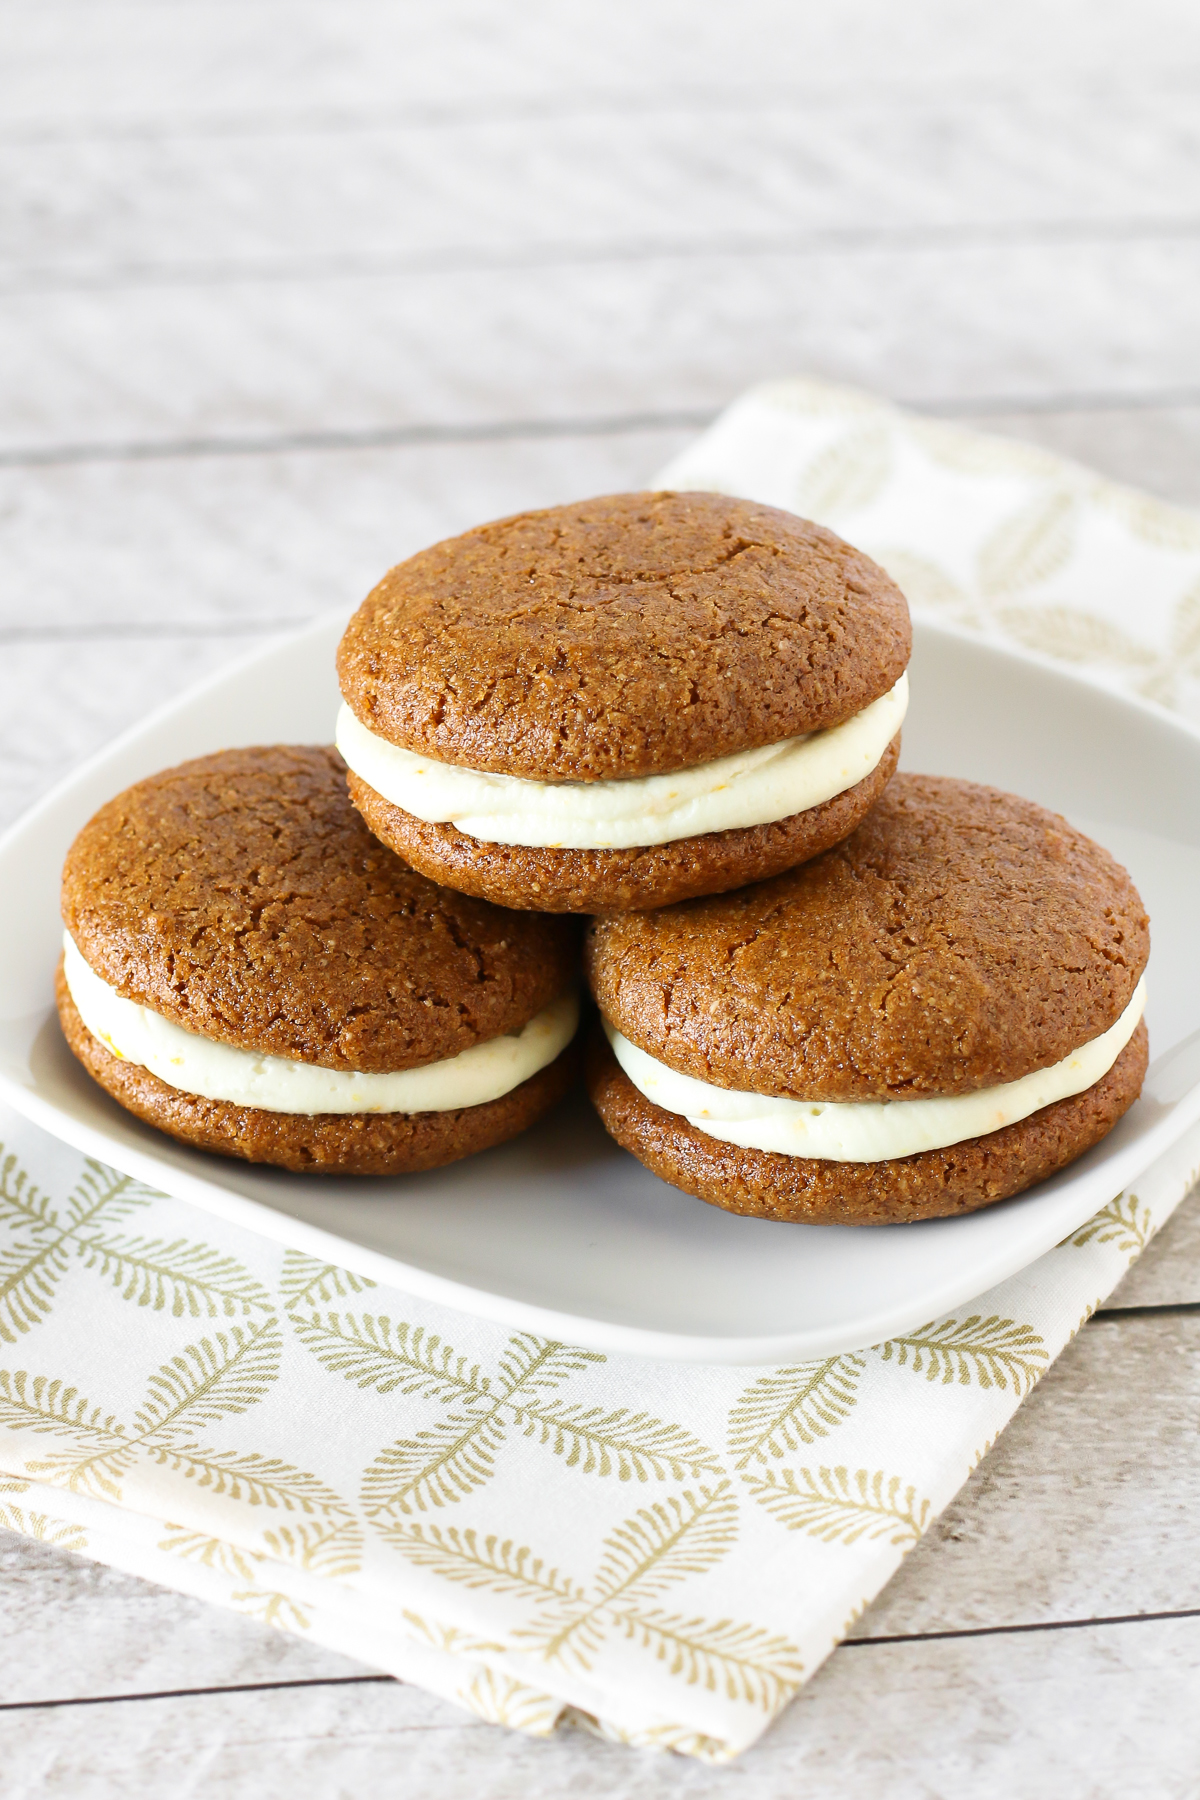 Gluten Free Vegan Gingerbread Whoopie Pies. Soft cake-like gingerbread cookies with a dairy free orange buttercream filling. Heavenly!